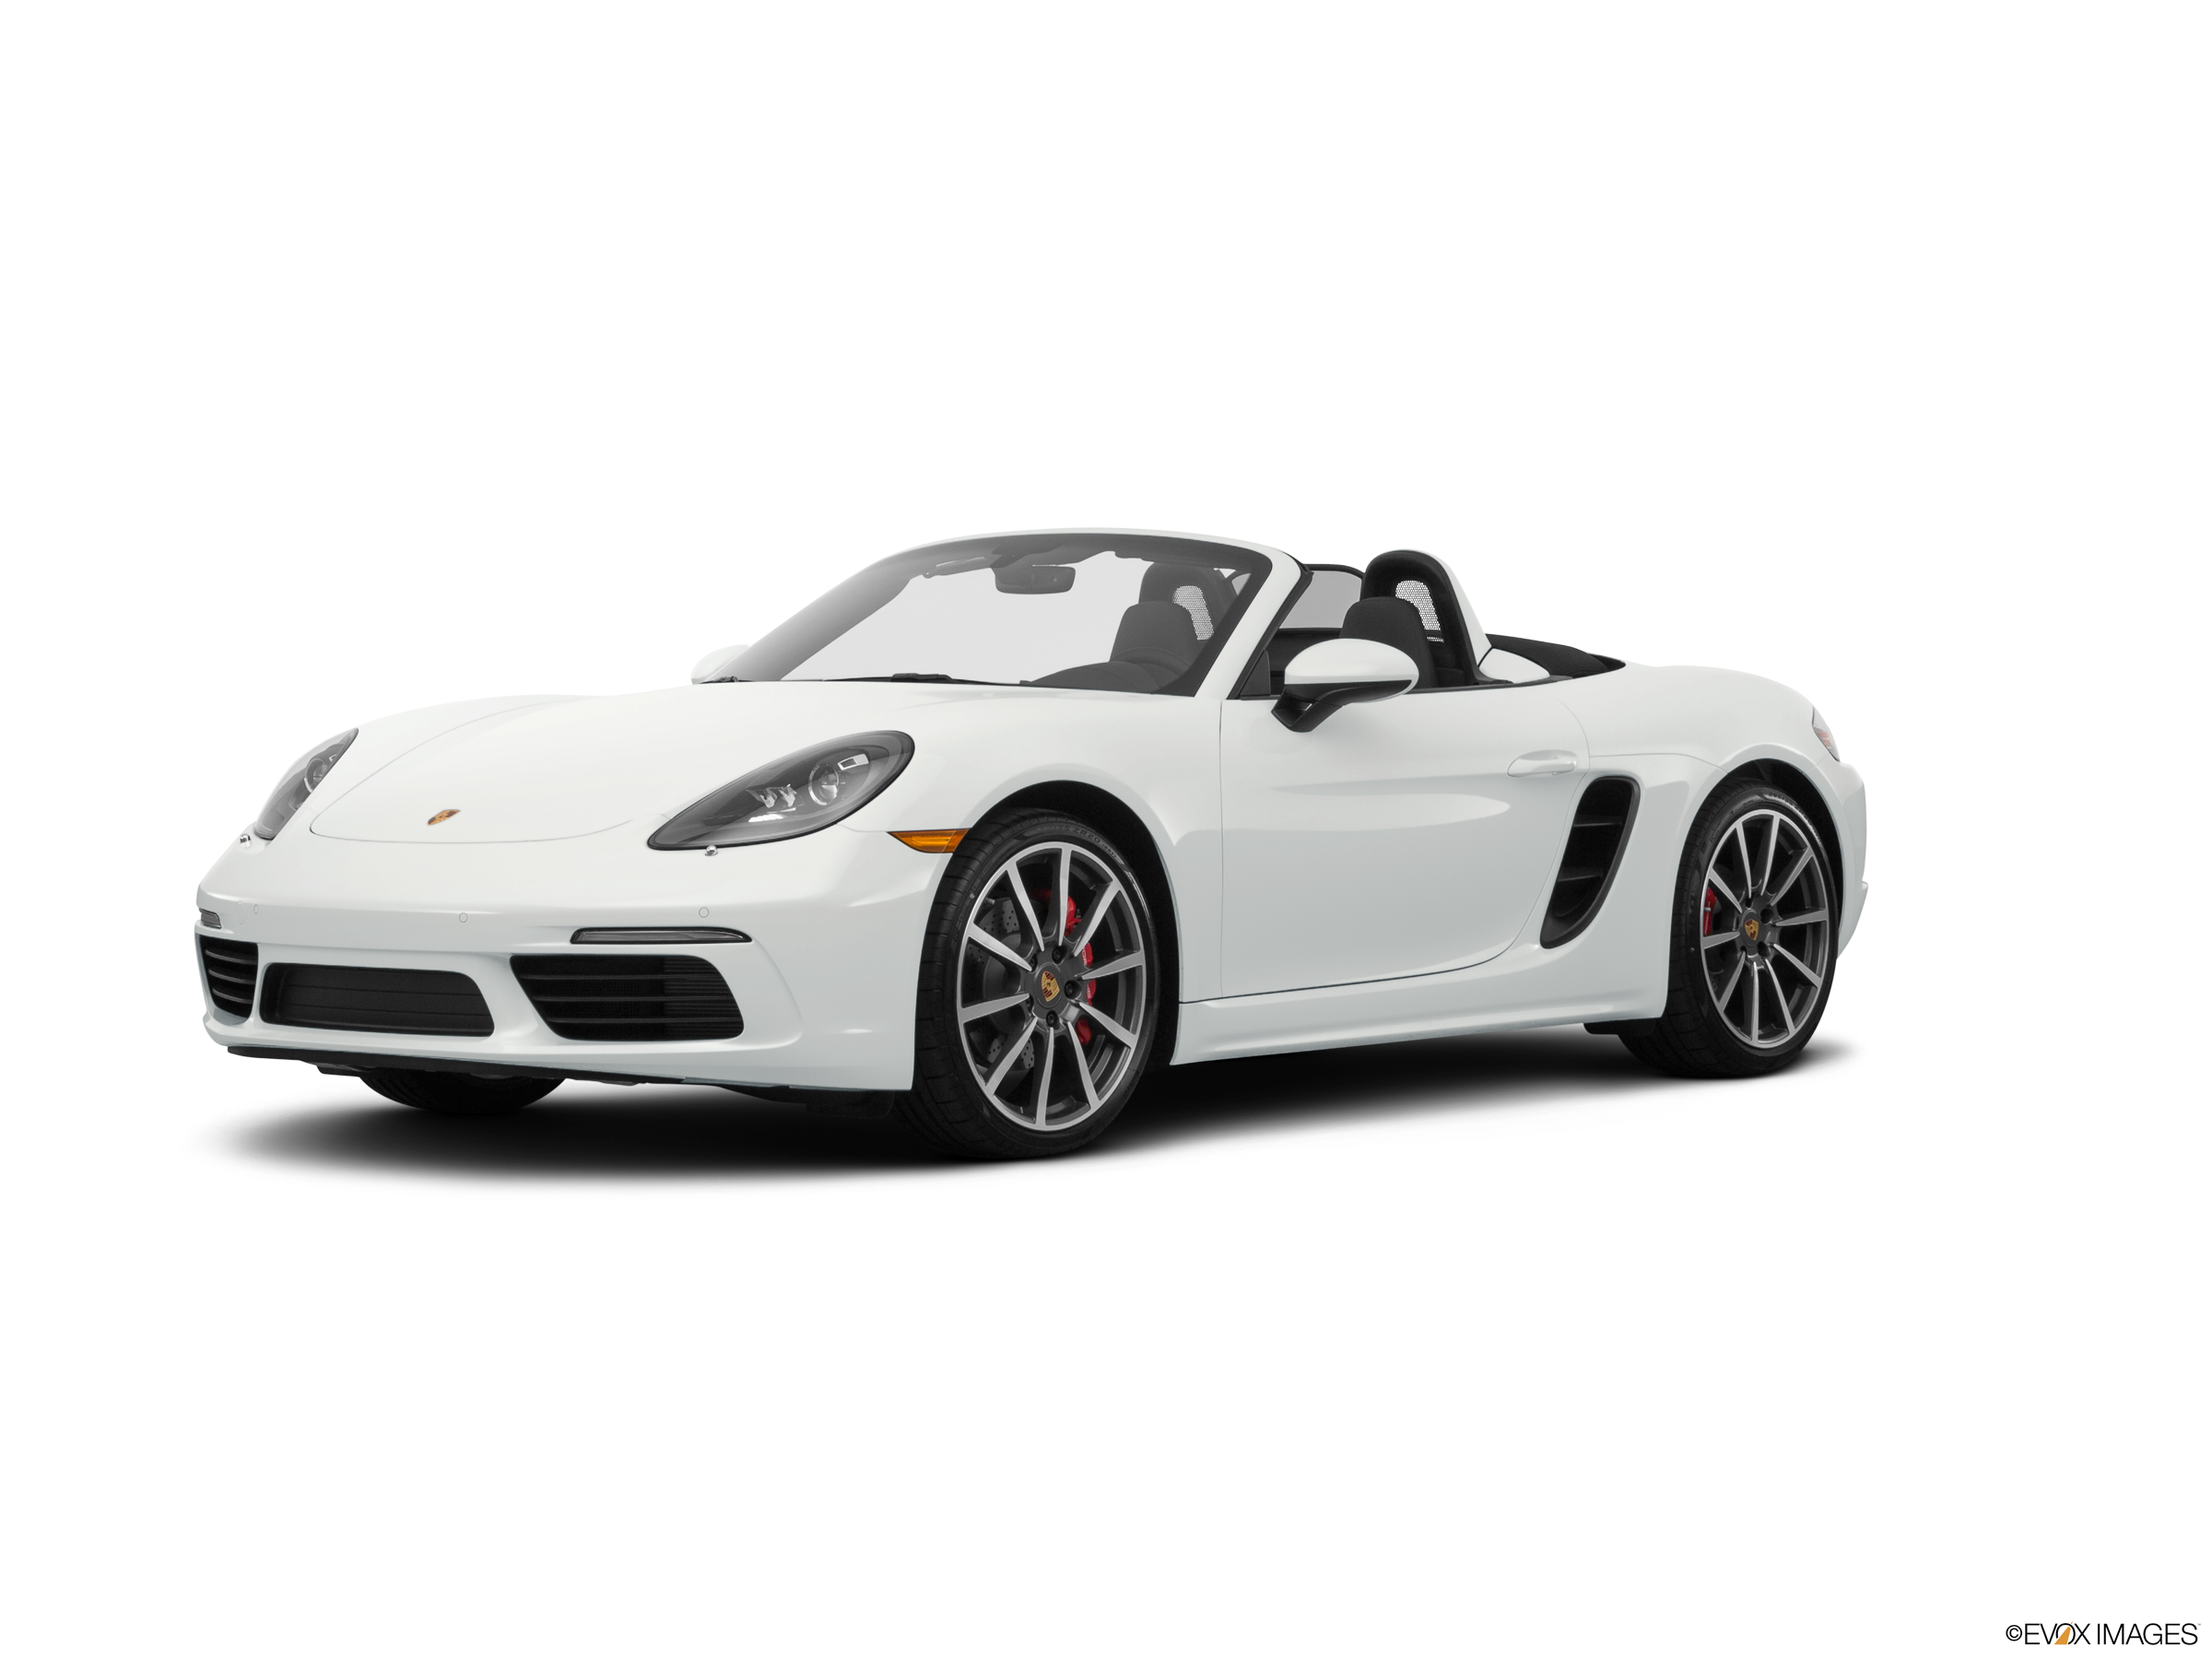 Top Expert Rated Luxury Vehicles of 2018 - 2018 Porsche 718 Boxster